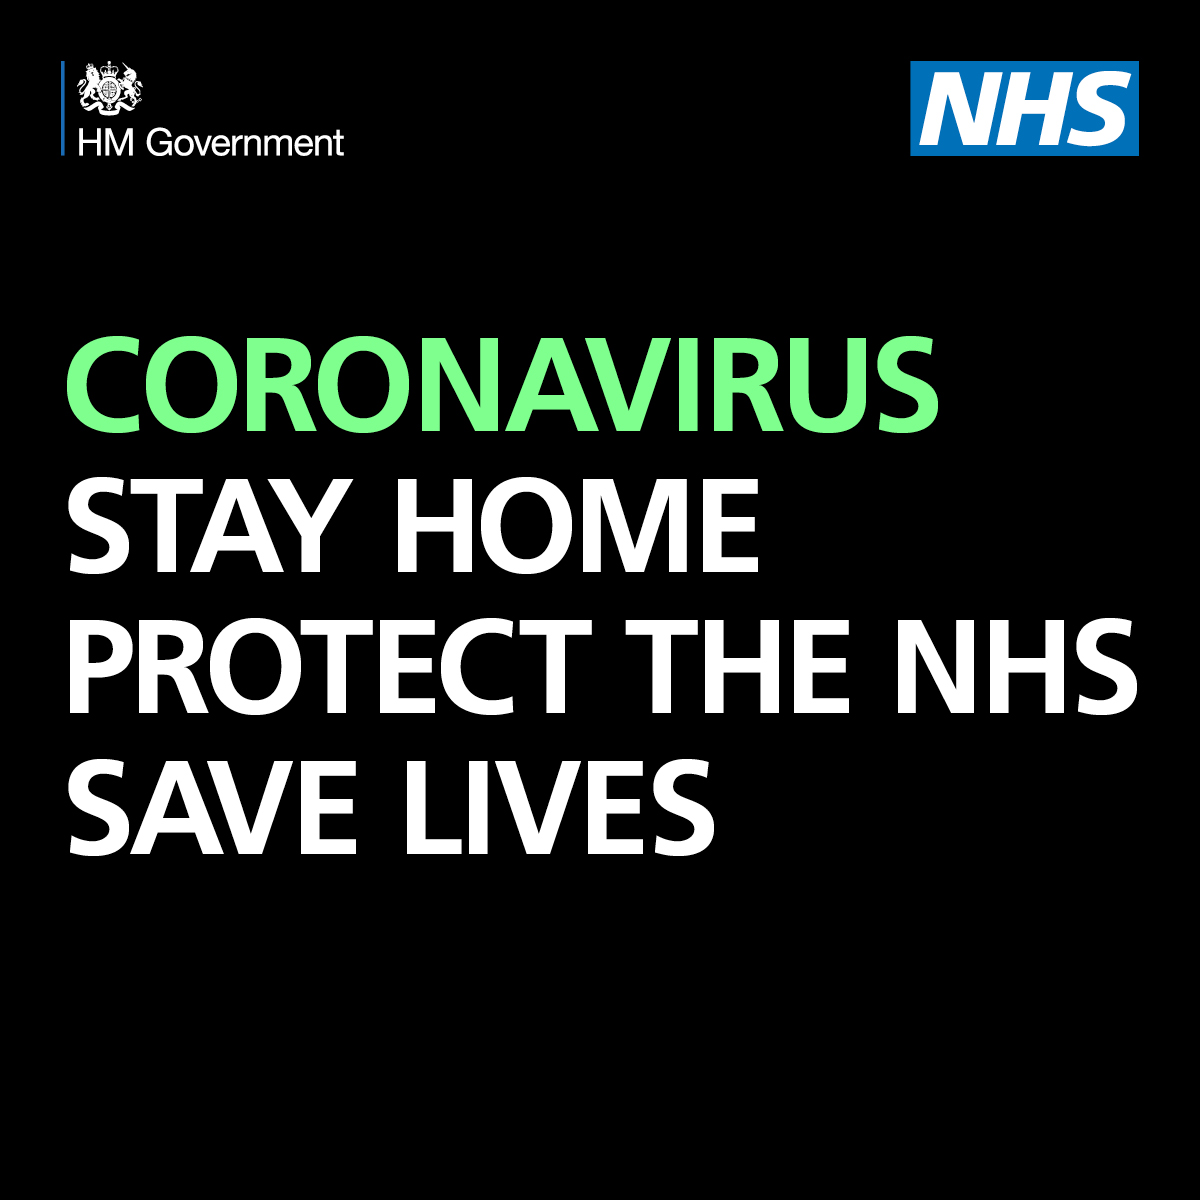 CORONAVIRUS: NEW RULES ON STAYING AT HOME AND AWAY FROM OTHERS